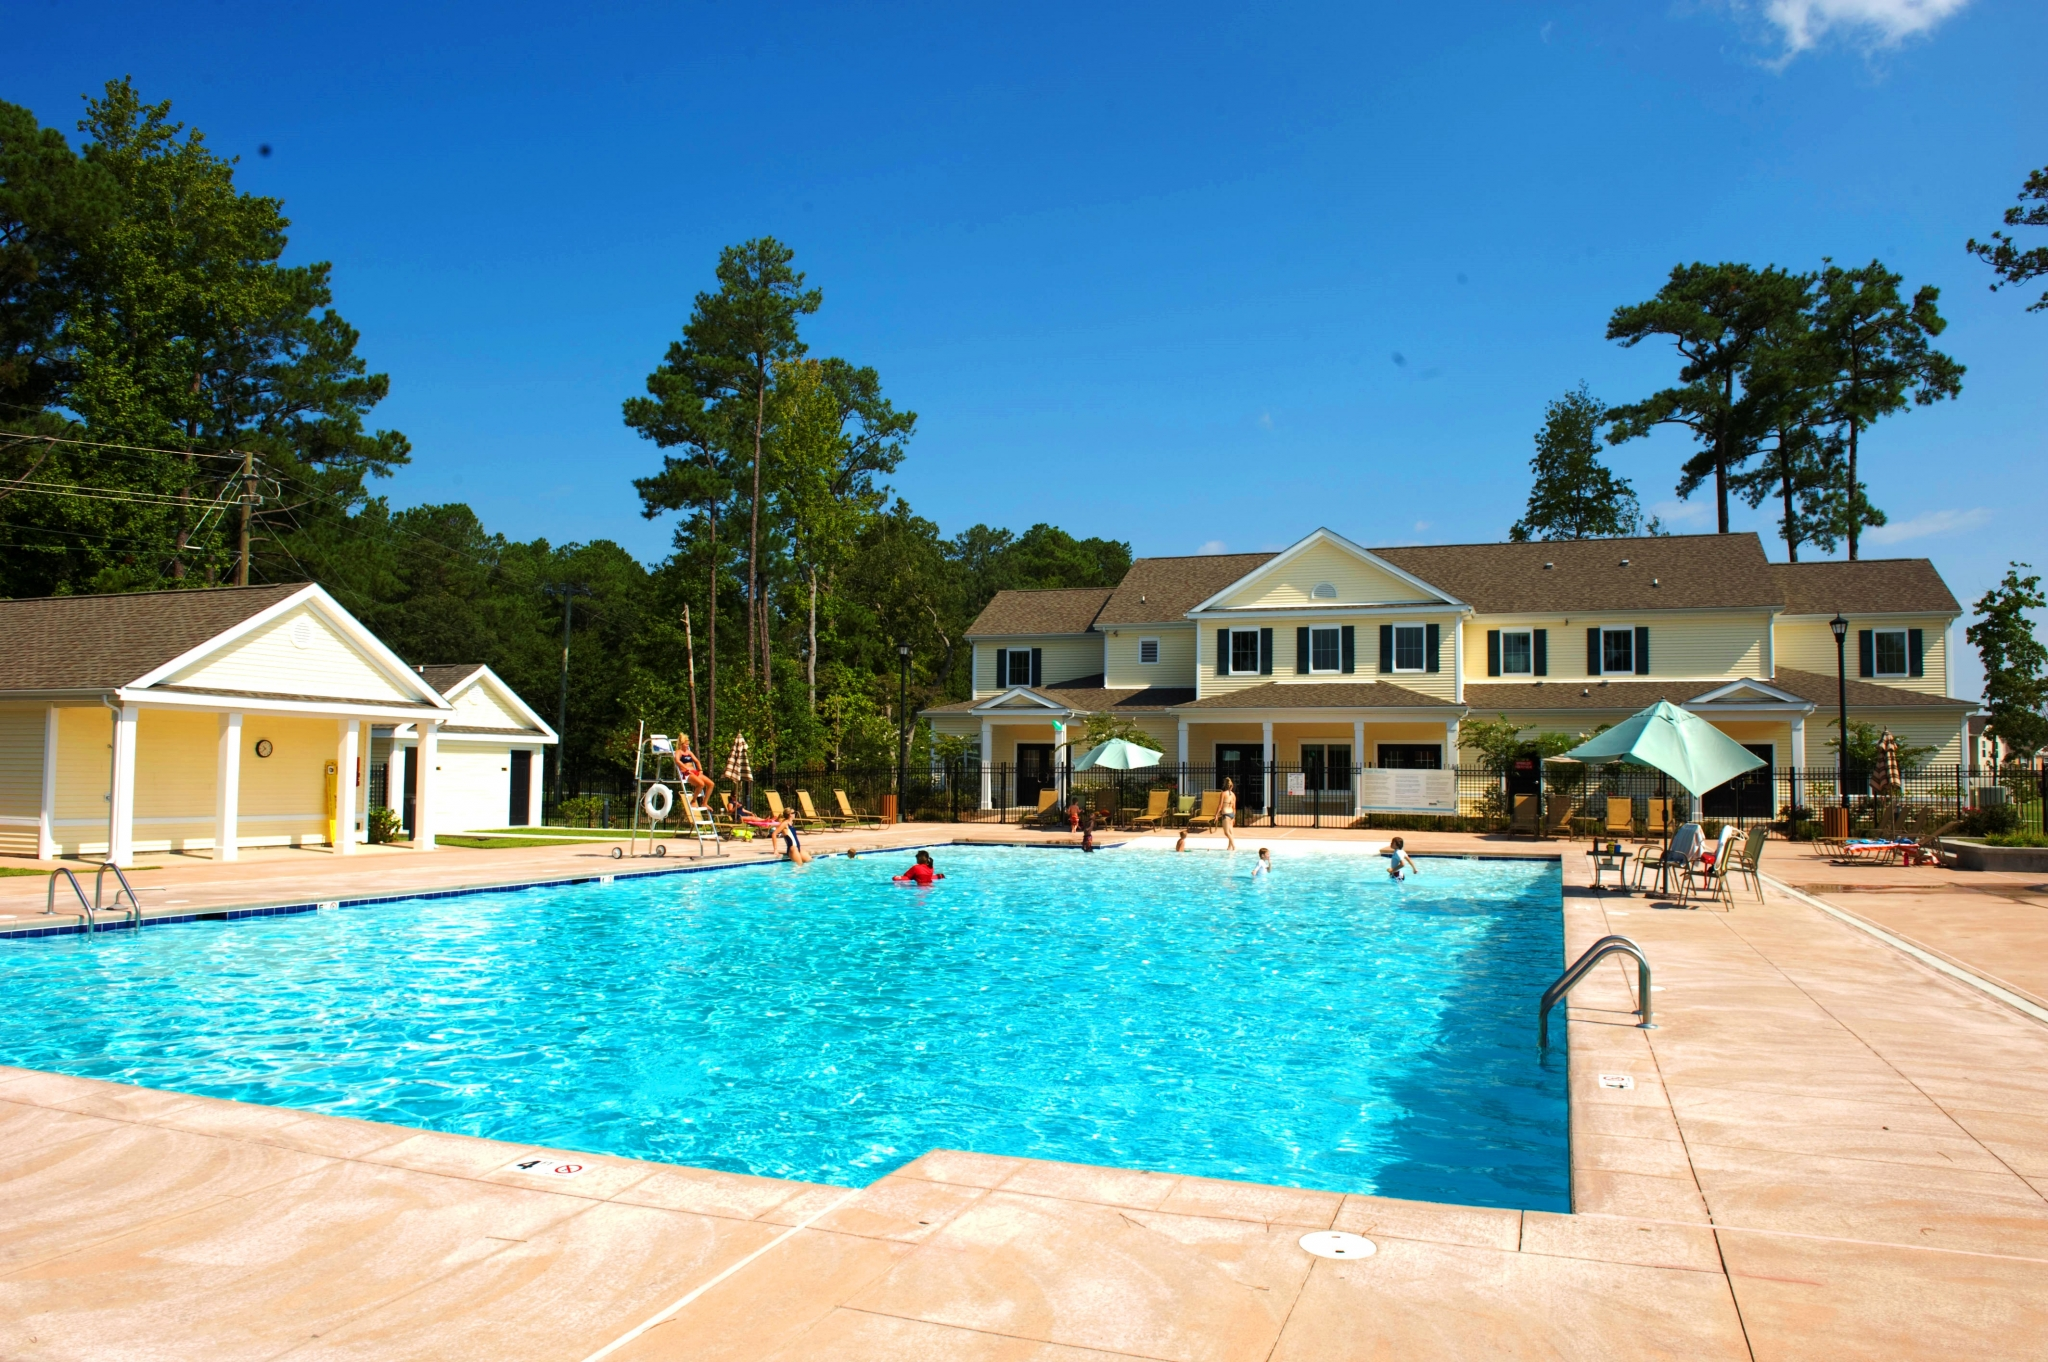 Swimming Pool | Amenity for Residents | Beautiful Pool | Concrete Pool | Outoor Pool